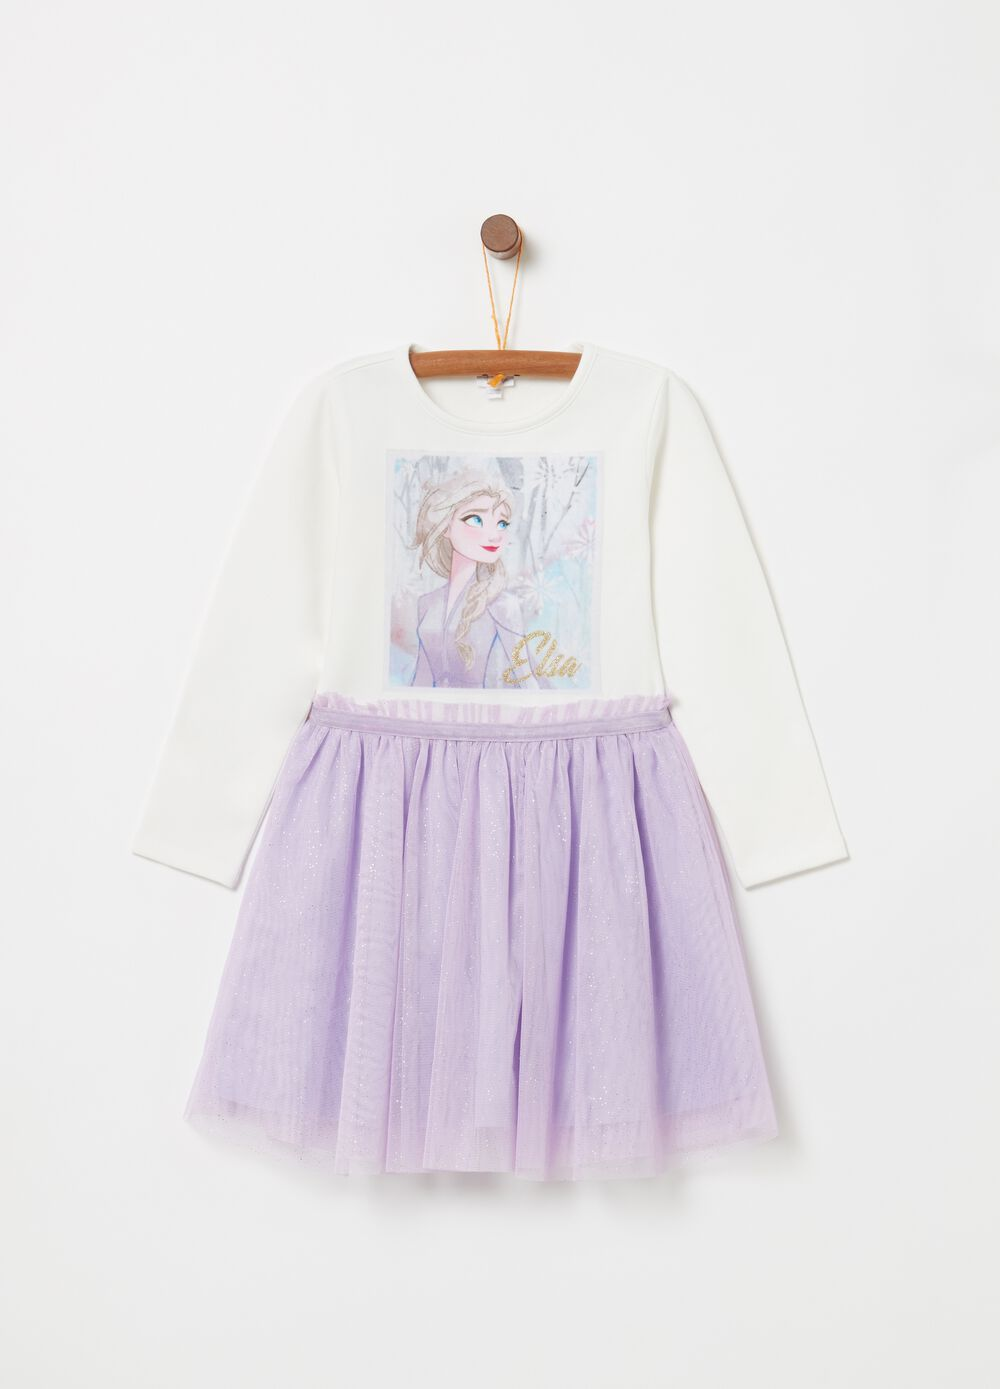 Disney Frozen 2 dress with tulle skirt